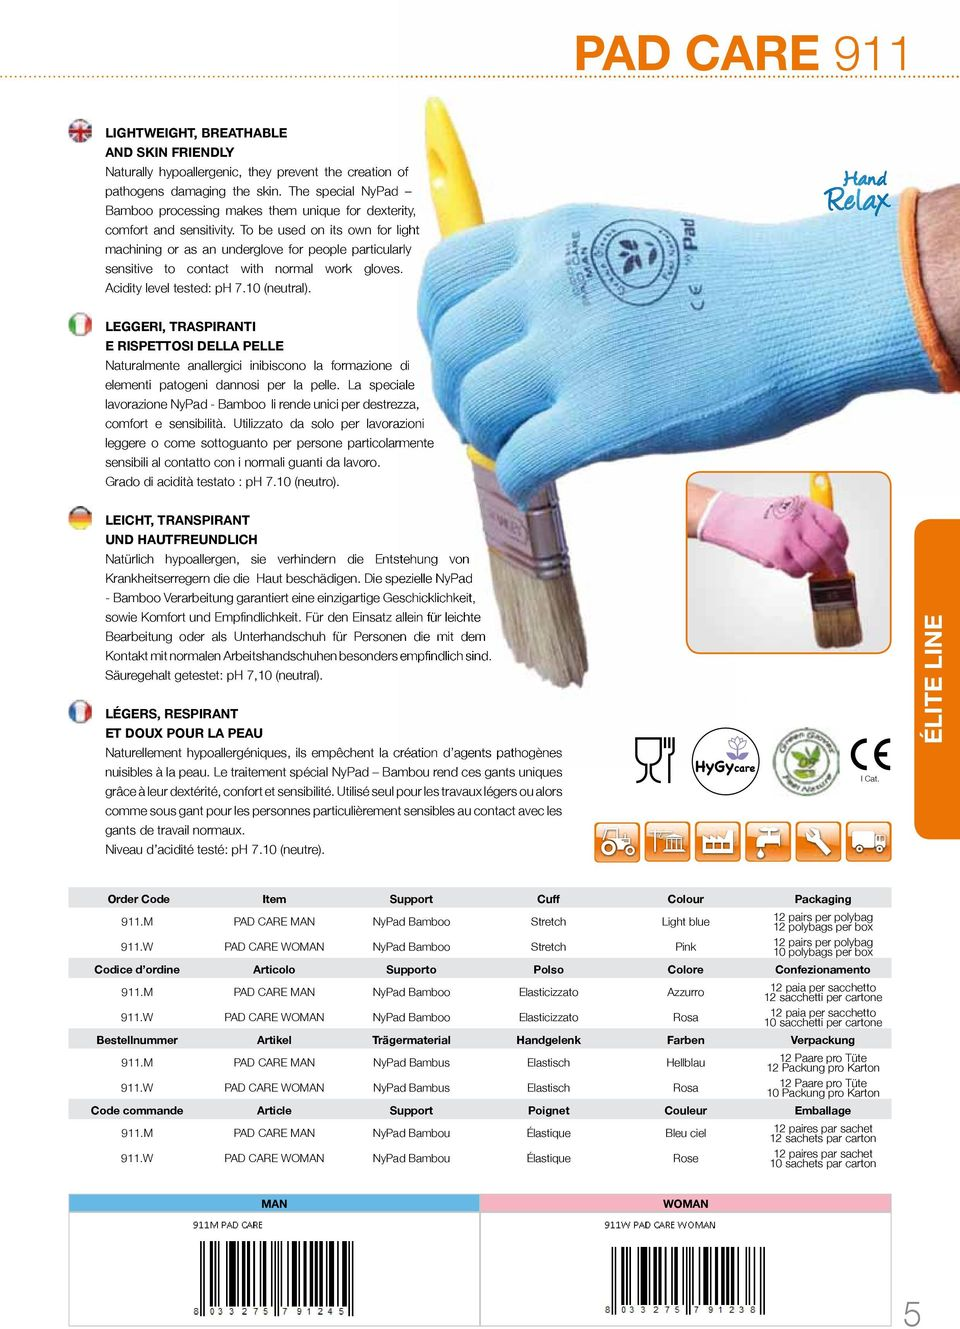 To be used on its own for light machining or as an underglove for people particularly sensitive to contact with normal work gloves. Acidity level tested: ph 7.10 (neutral).